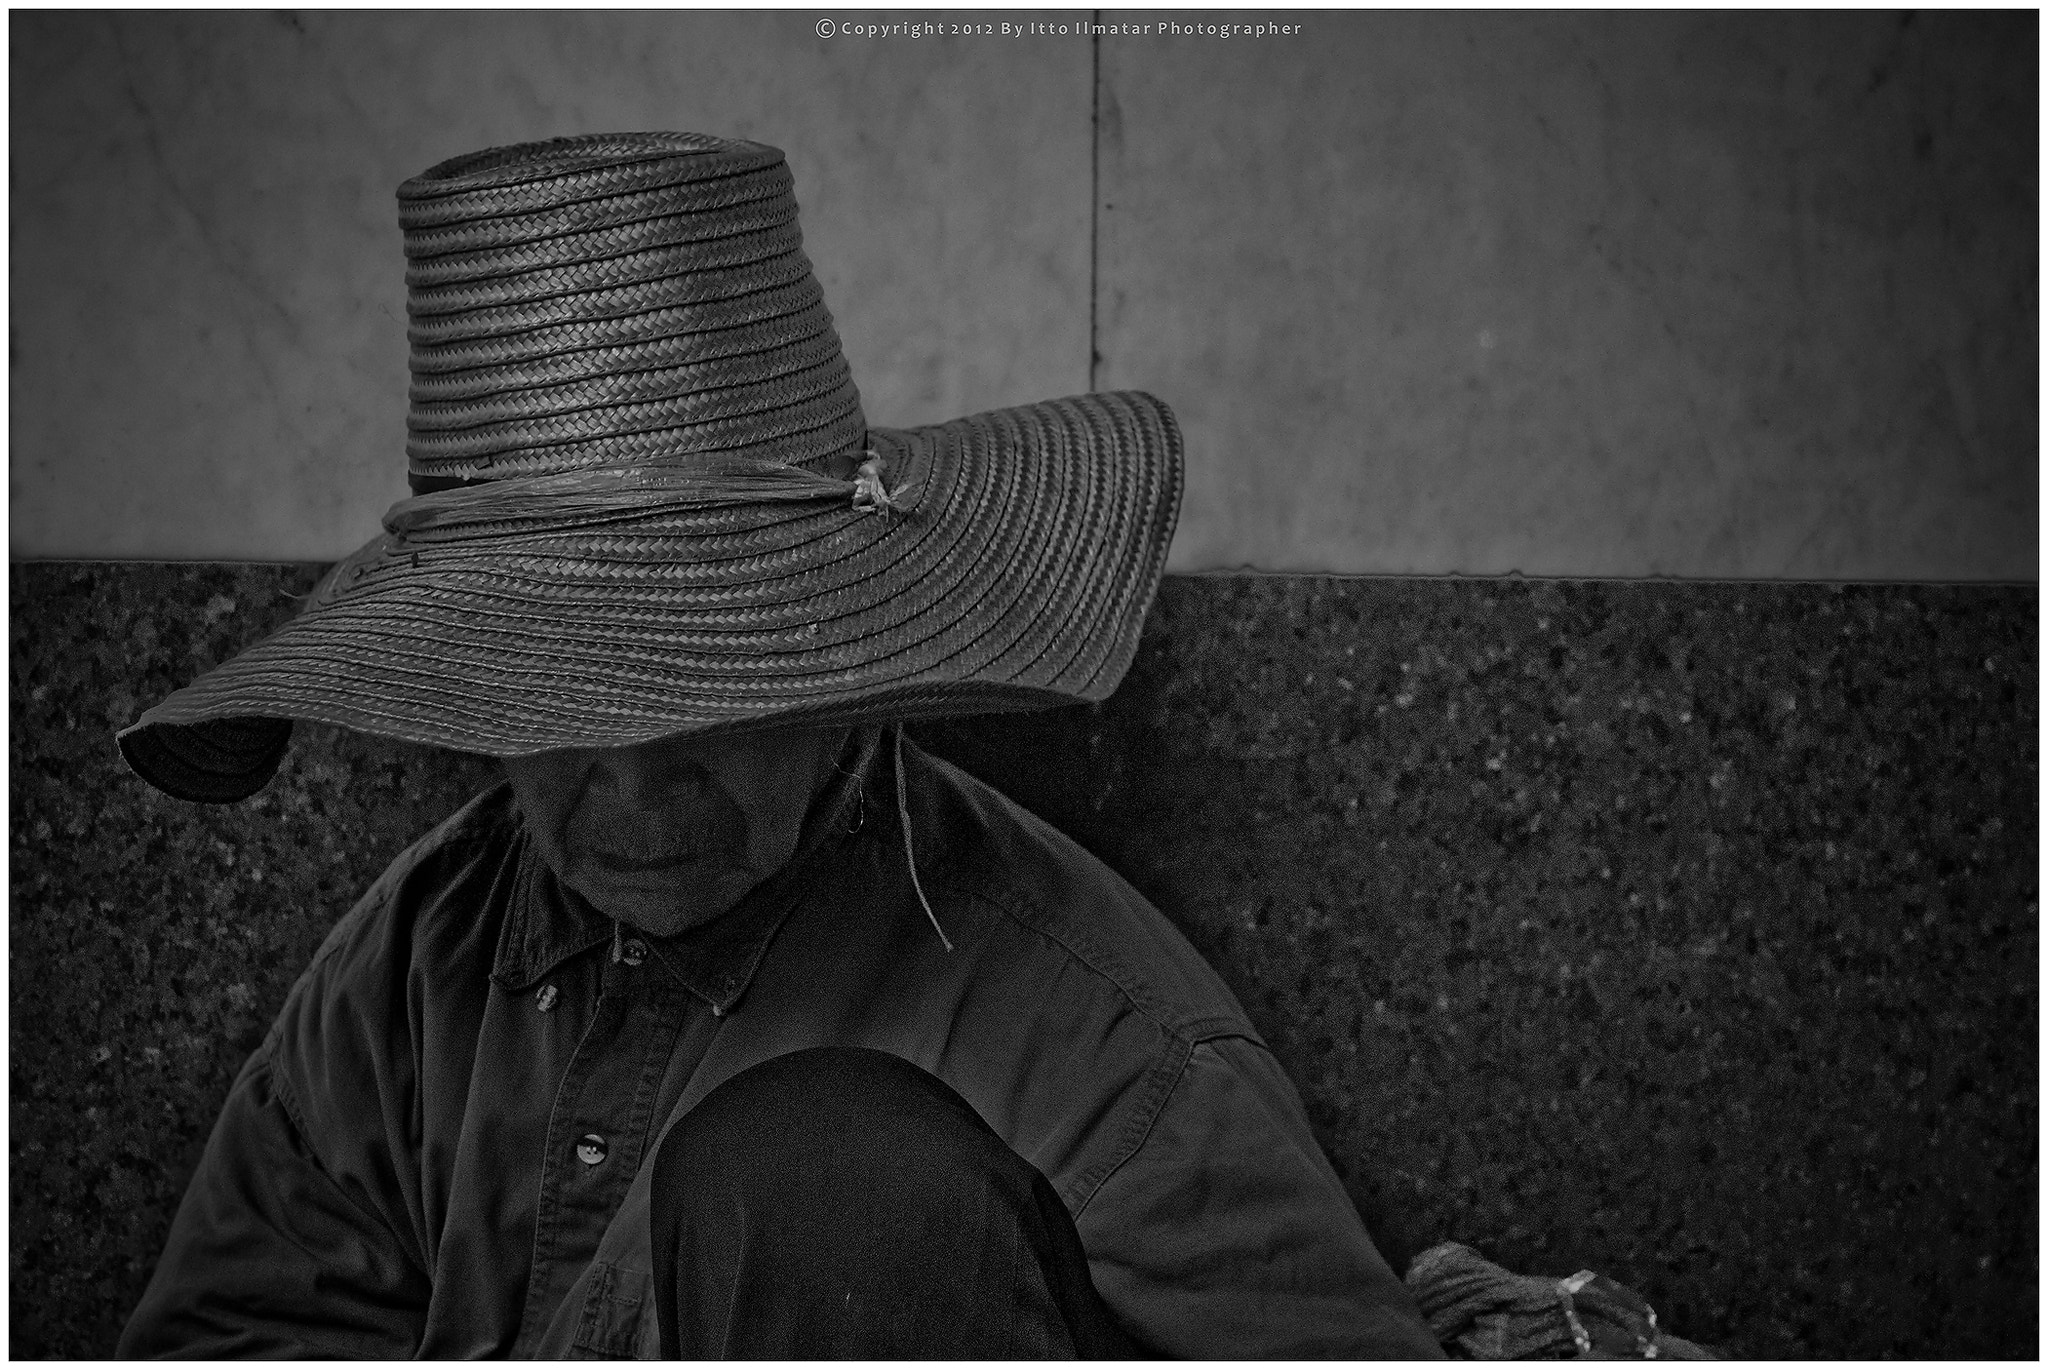 Photograph Rest.. by Itto Ilmatar on 500px